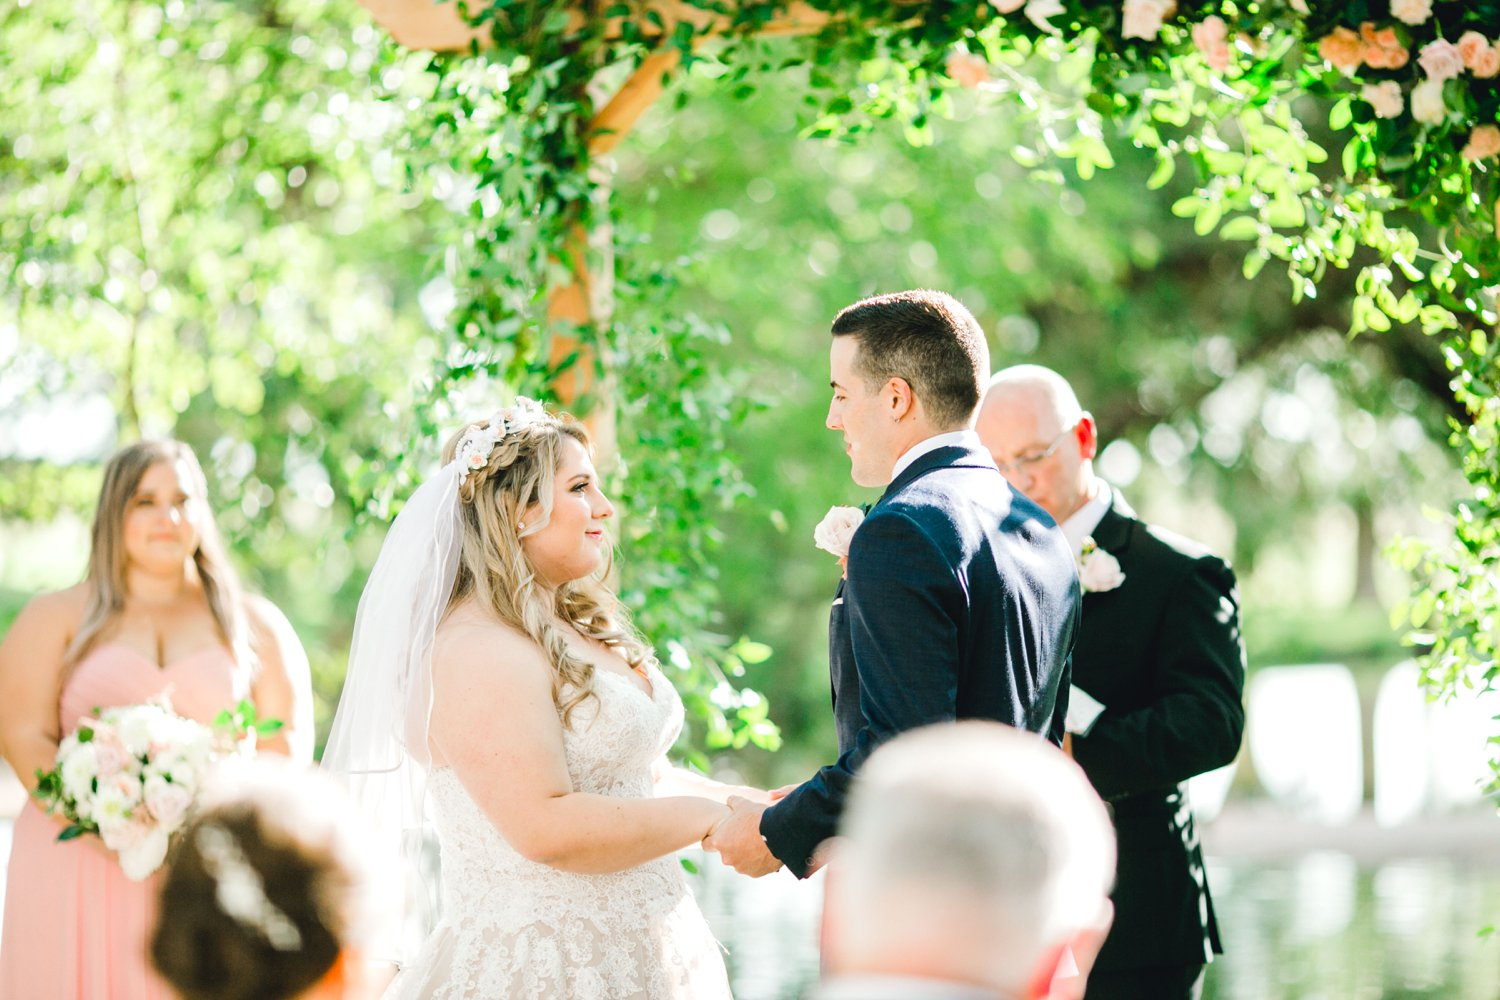 SARAH_AND_GEOFFREY_SHARP_SPIRIT_RANCH_WEDDING_ALLEEJ_LUBBOCK_TX_0067.jpg